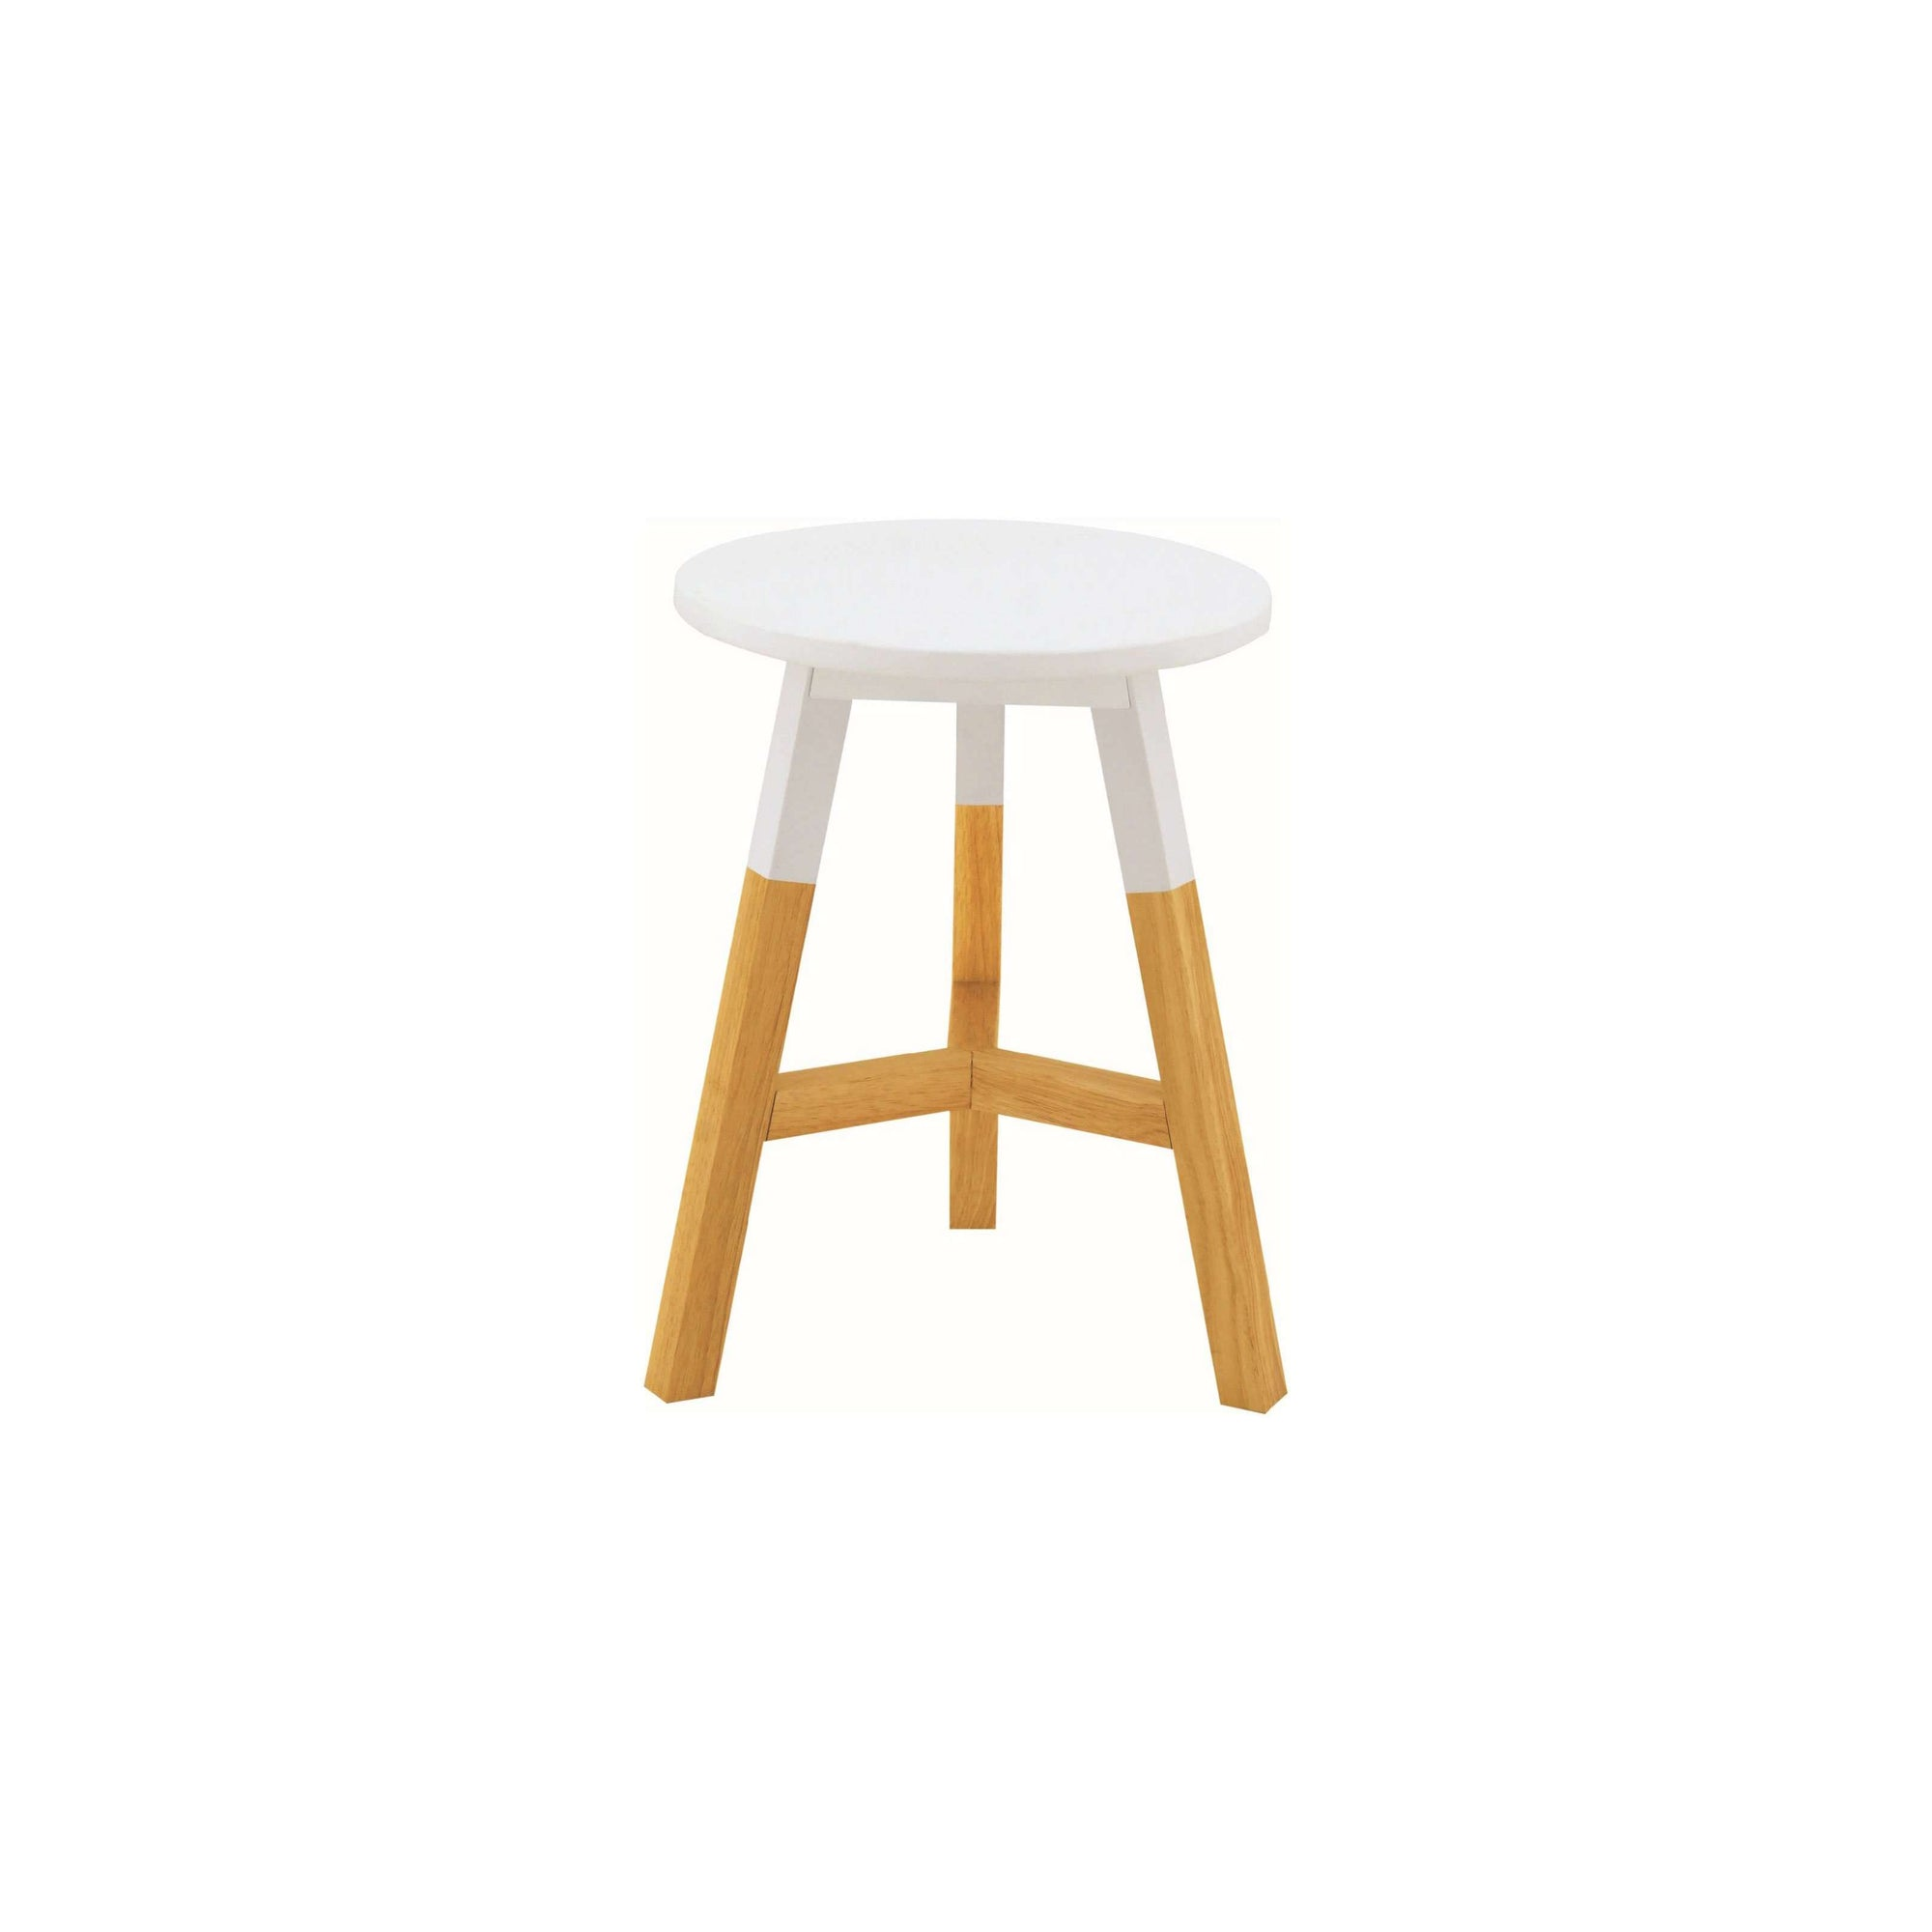 REBA 4 X Stool With White Lacquered Top, Natural Colour Leg